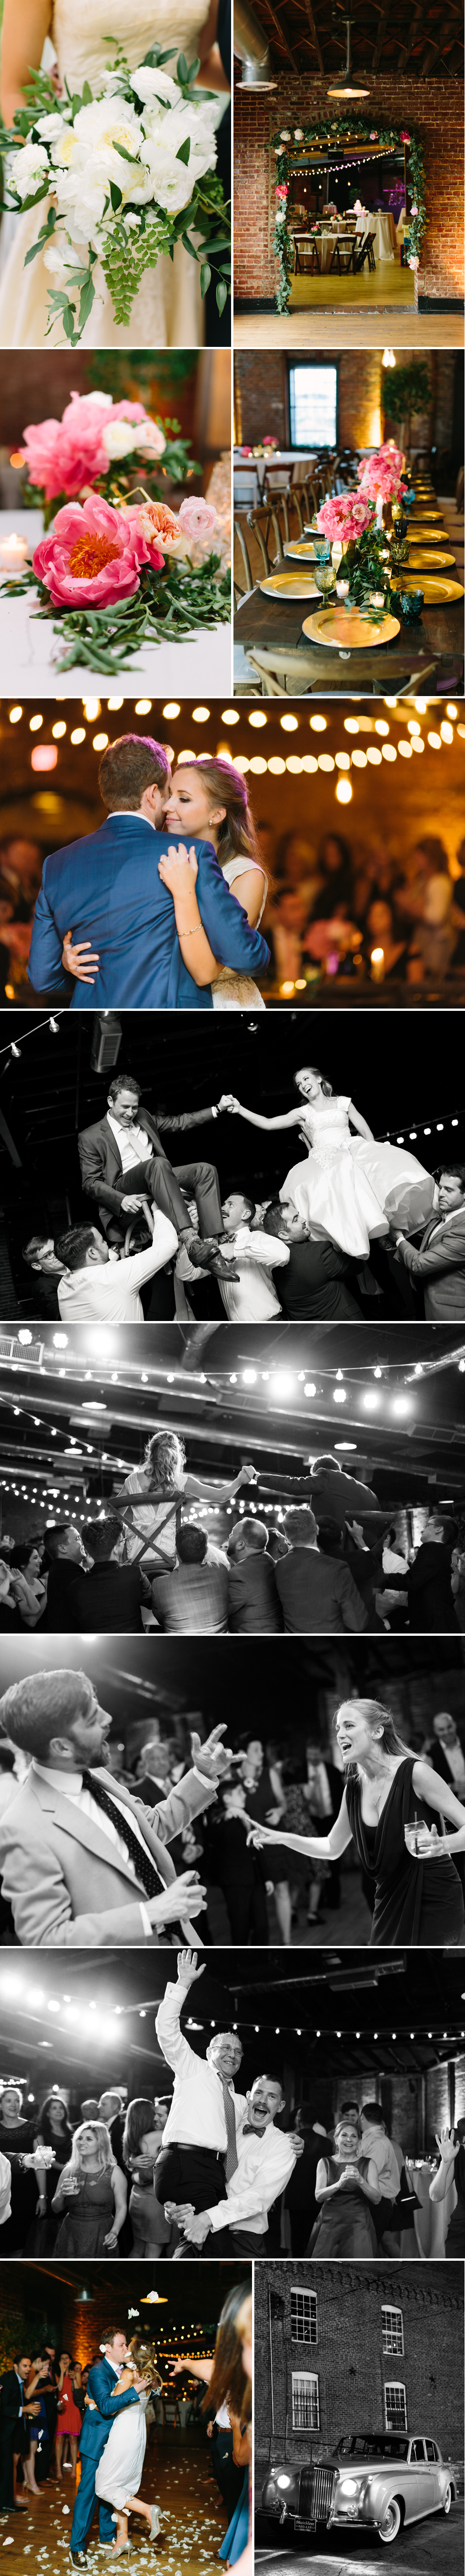 Nashville_Wedding_Photographers_6.jpg